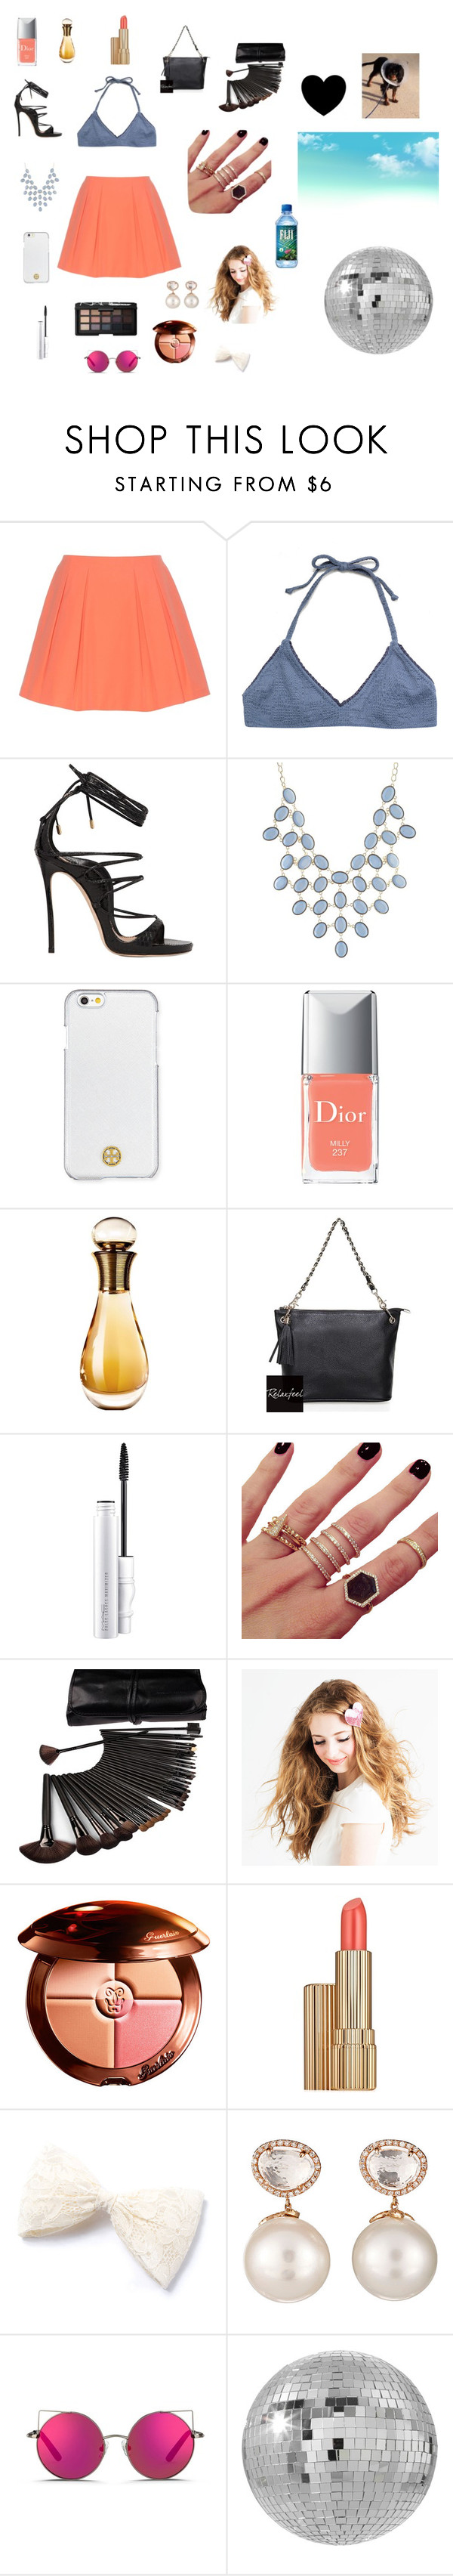 """disco dog:)"" by aubreyjcason ❤ liked on Polyvore featuring Alice + Olivia, Made By Dawn, Dsquared2, Charlotte Russe, Tory Burch, Christian Dior, Relaxfeel, MAC Cosmetics, Melanie Auld and NARS Cosmetics"